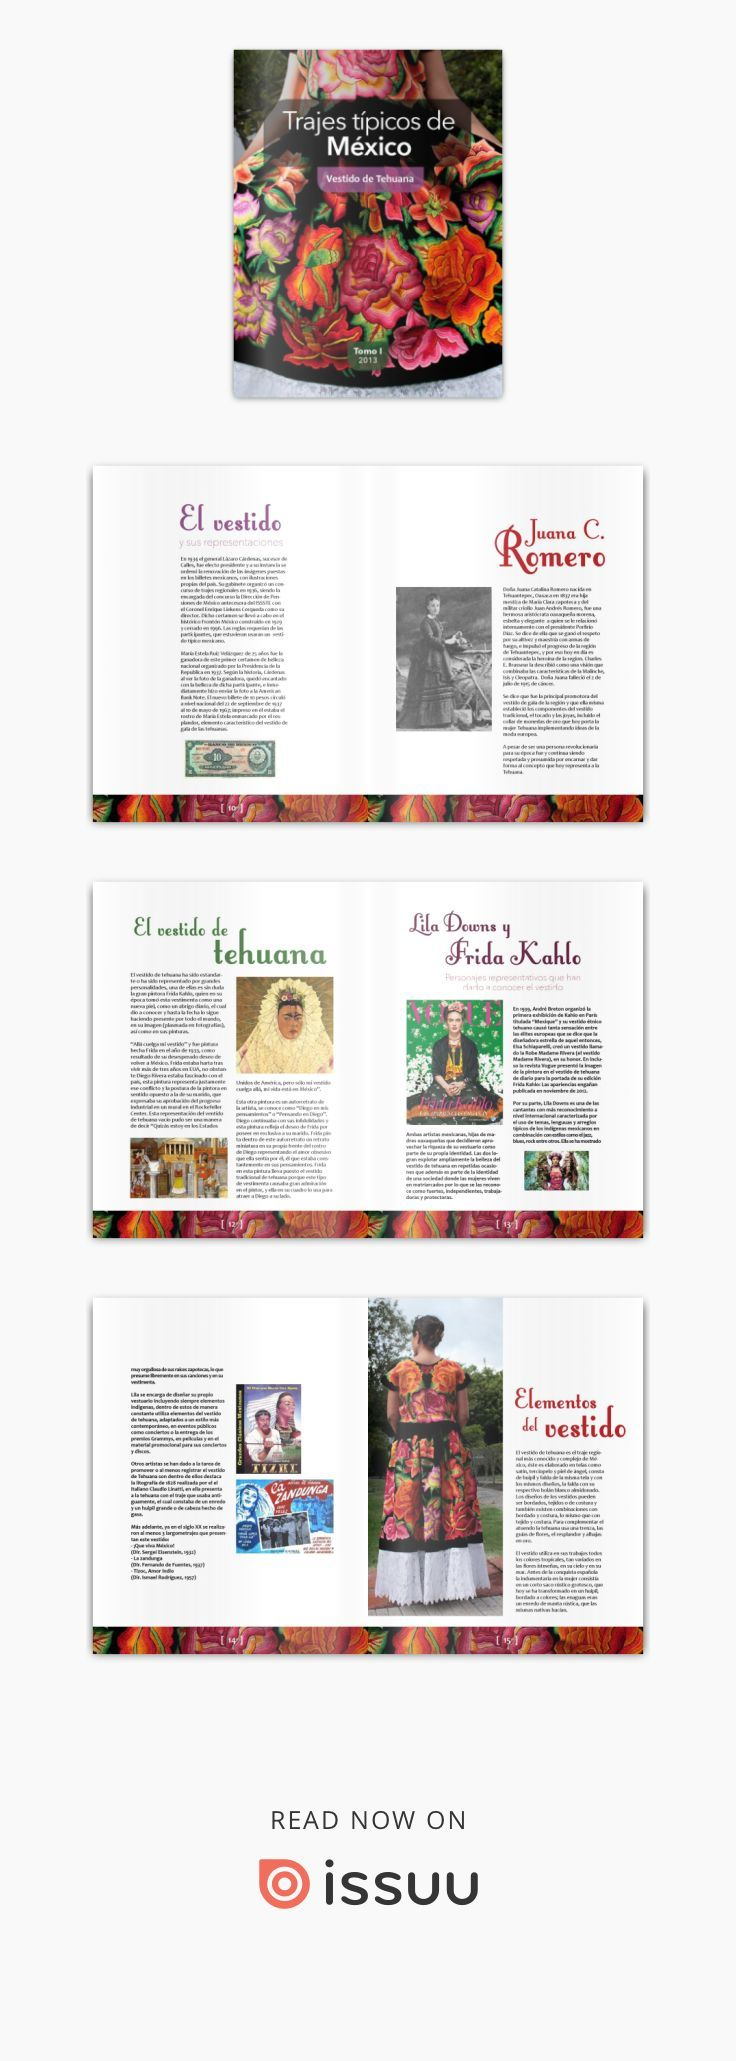 Issuu is a digital publishing platform that makes it simple to publish magazines, catalogs, newspapers, books, and more online. Easily share your publications and get them in front of Issuu's millions of monthly readers. Title: Vestido de tehuana, Author: Suzy B. González, Name: Vestido de tehuana, Length: 23 pages, Page: 1, Published: 2015-03-27